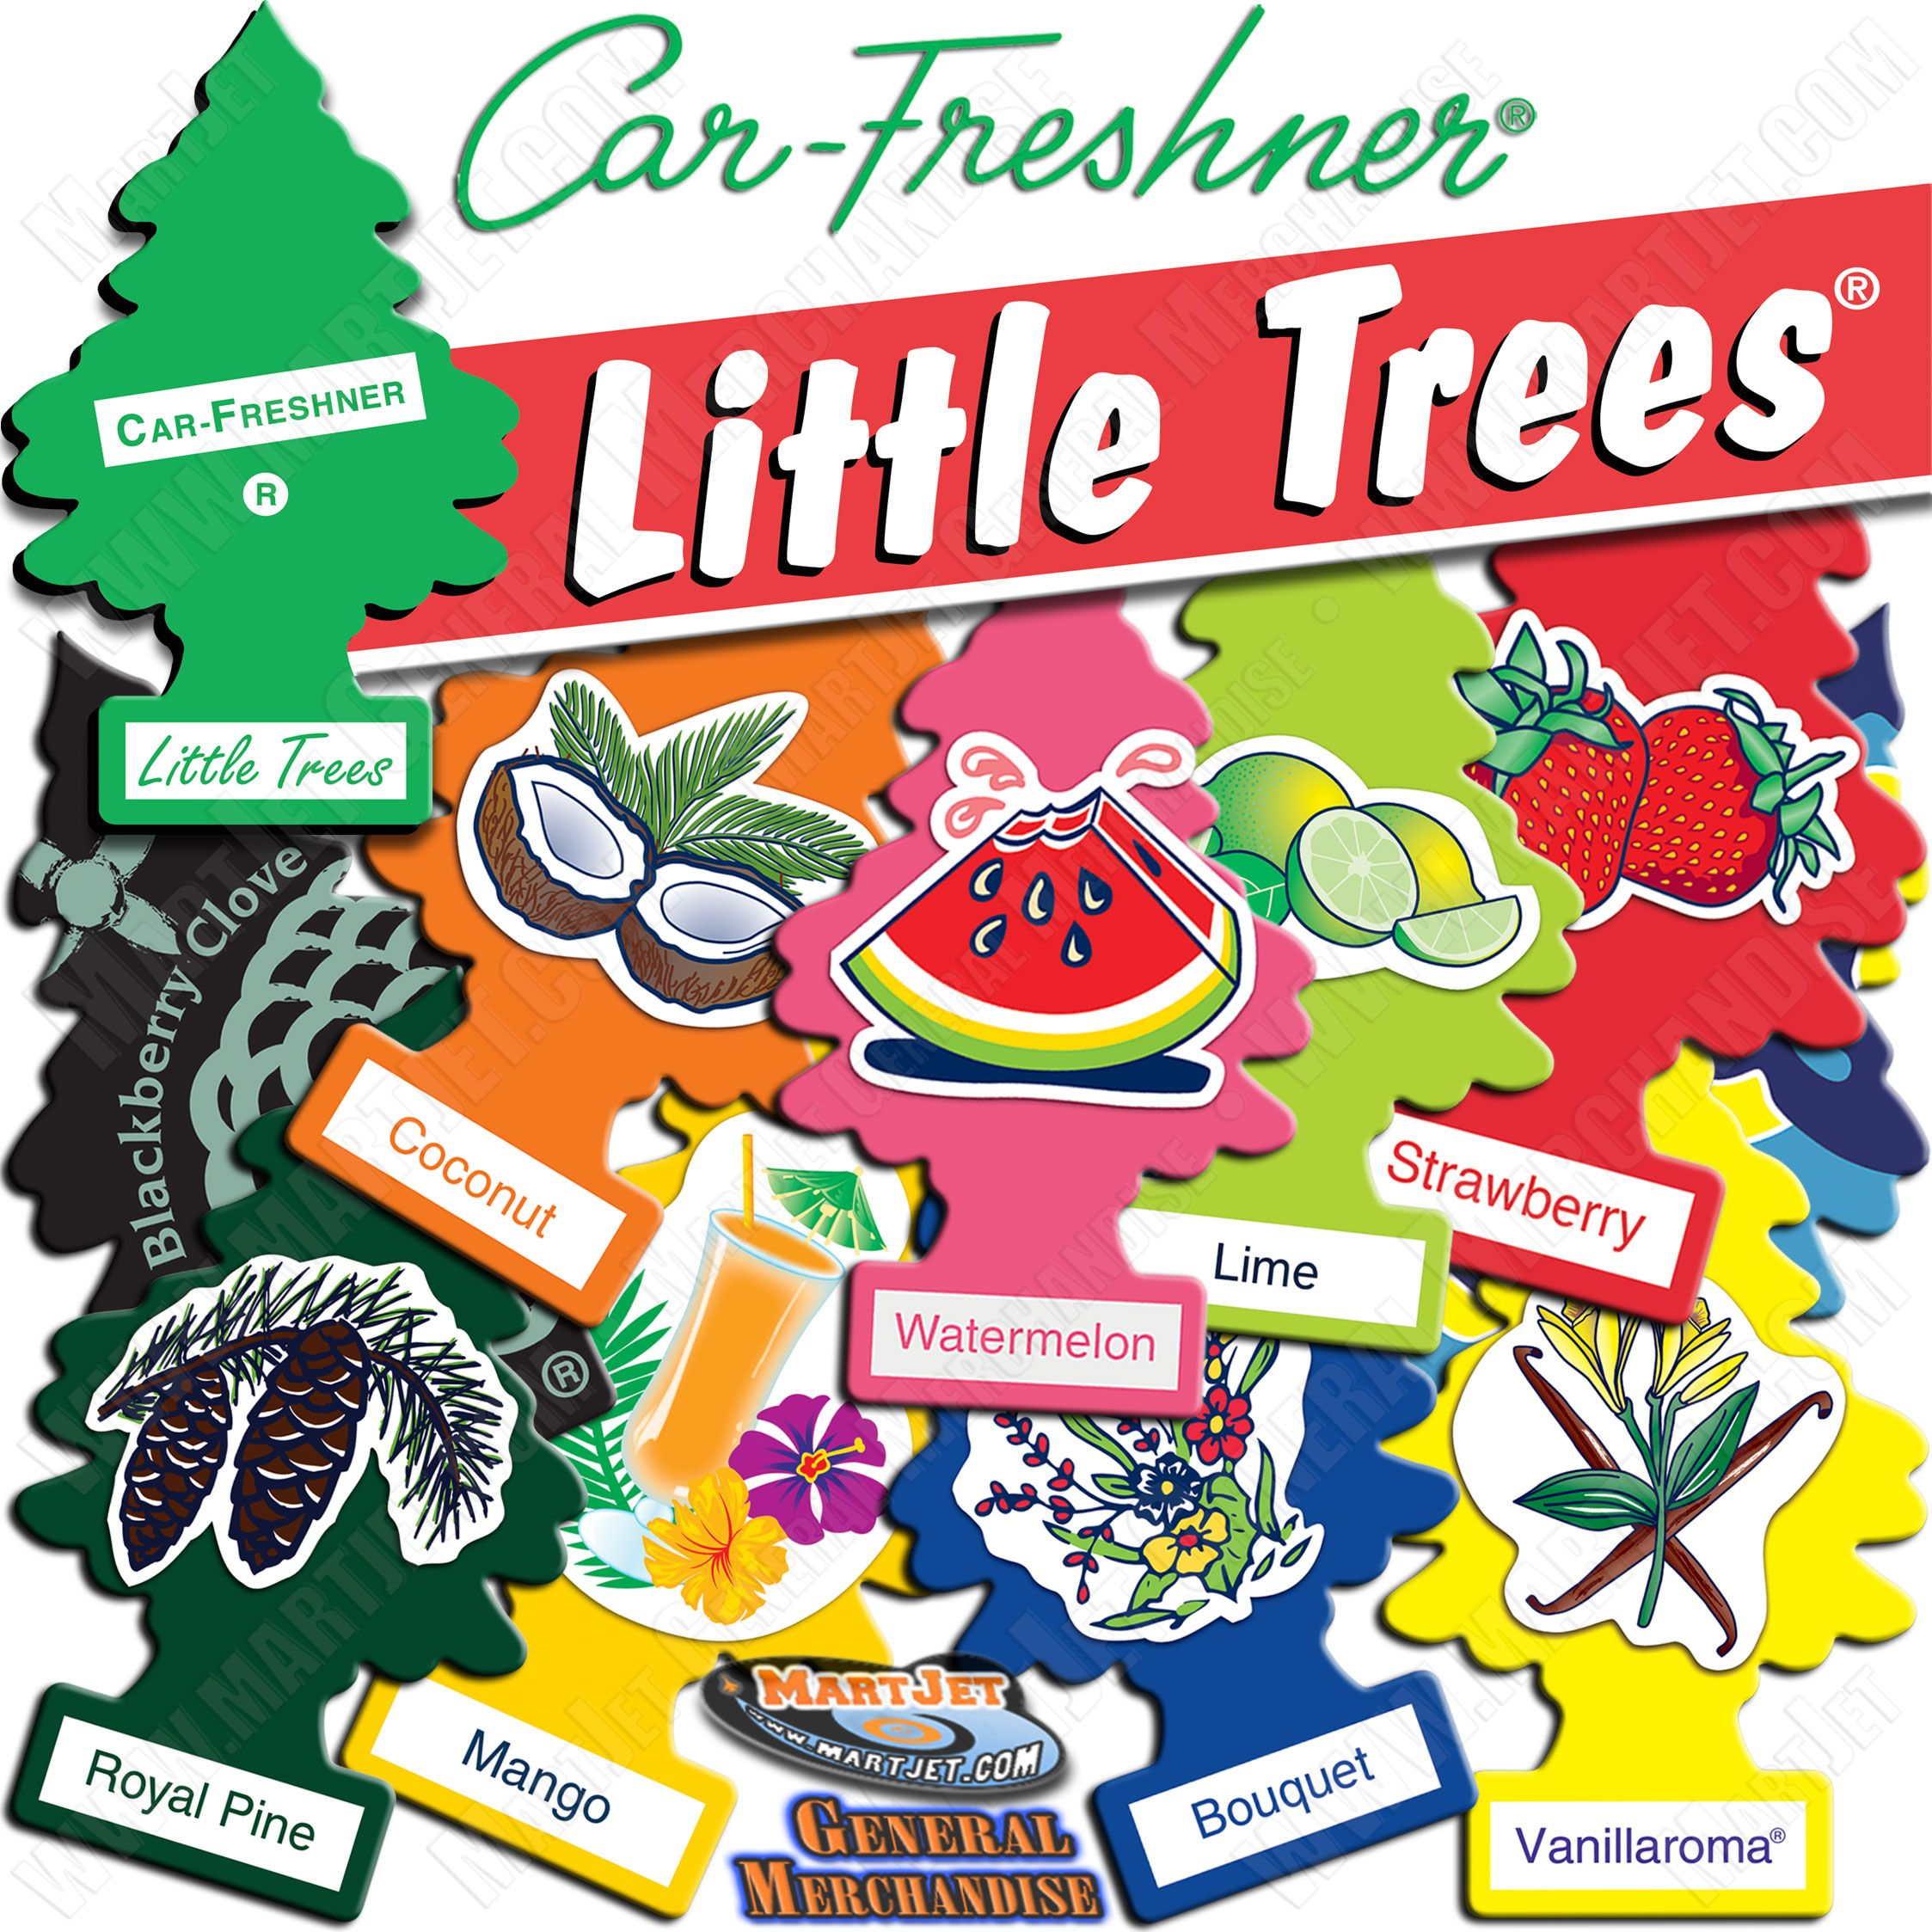 Car Fresheners to keep your vehicle smelling good and